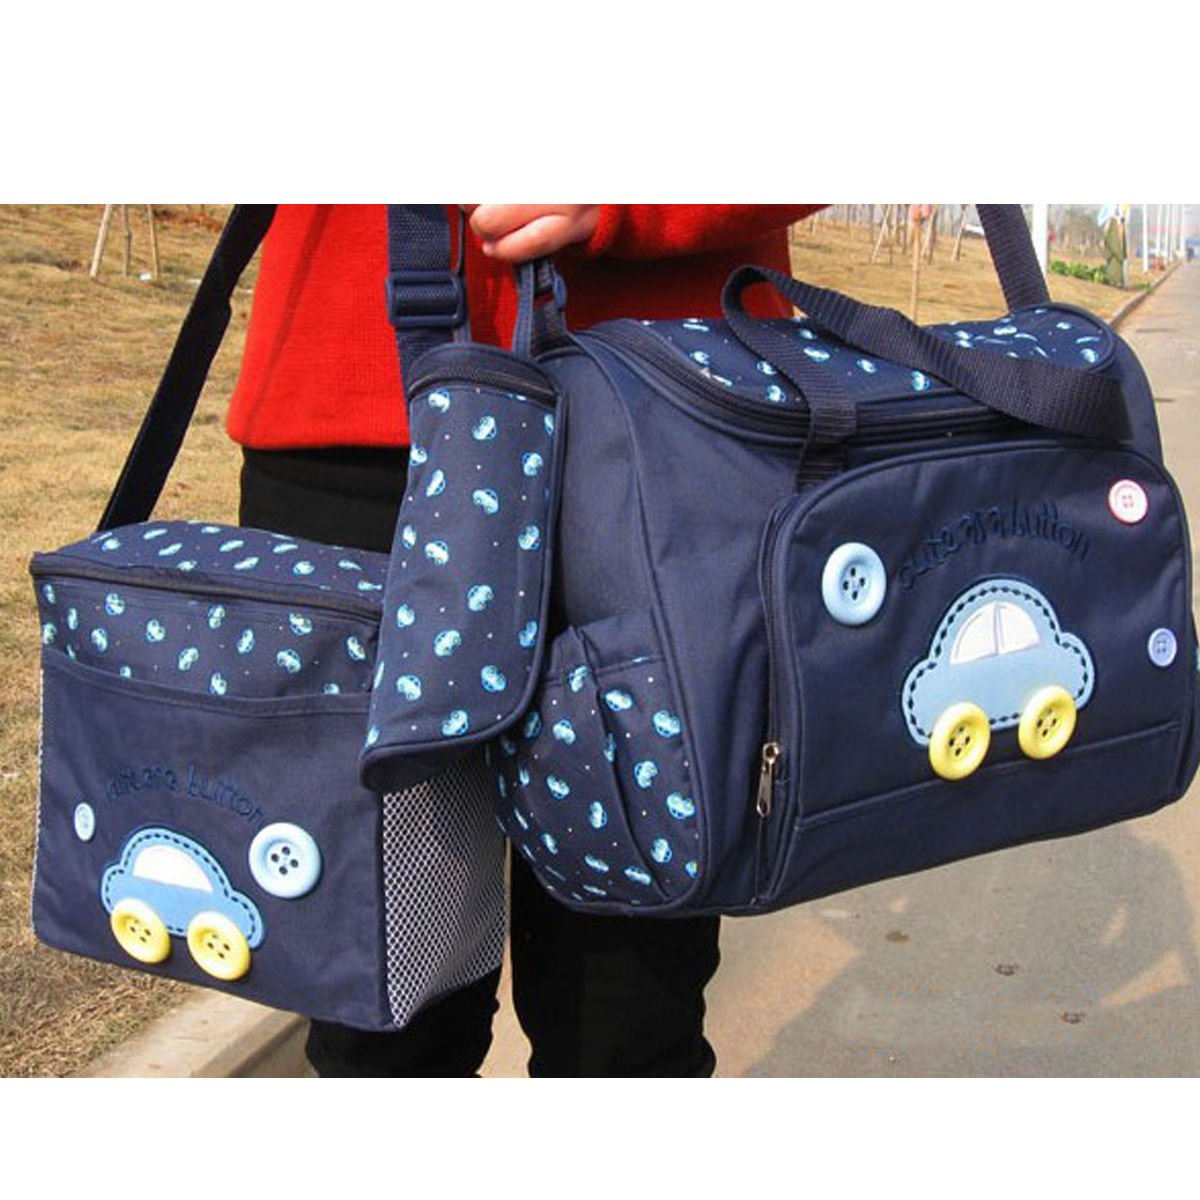 MKQPOWER 4pcs Baby Diaper Nappy Changing Bag Multi-functional Waterproof Mummy Shoulder Bag Bottle Holder Travel Backpack for Mothers Day Gift Purplish Blue